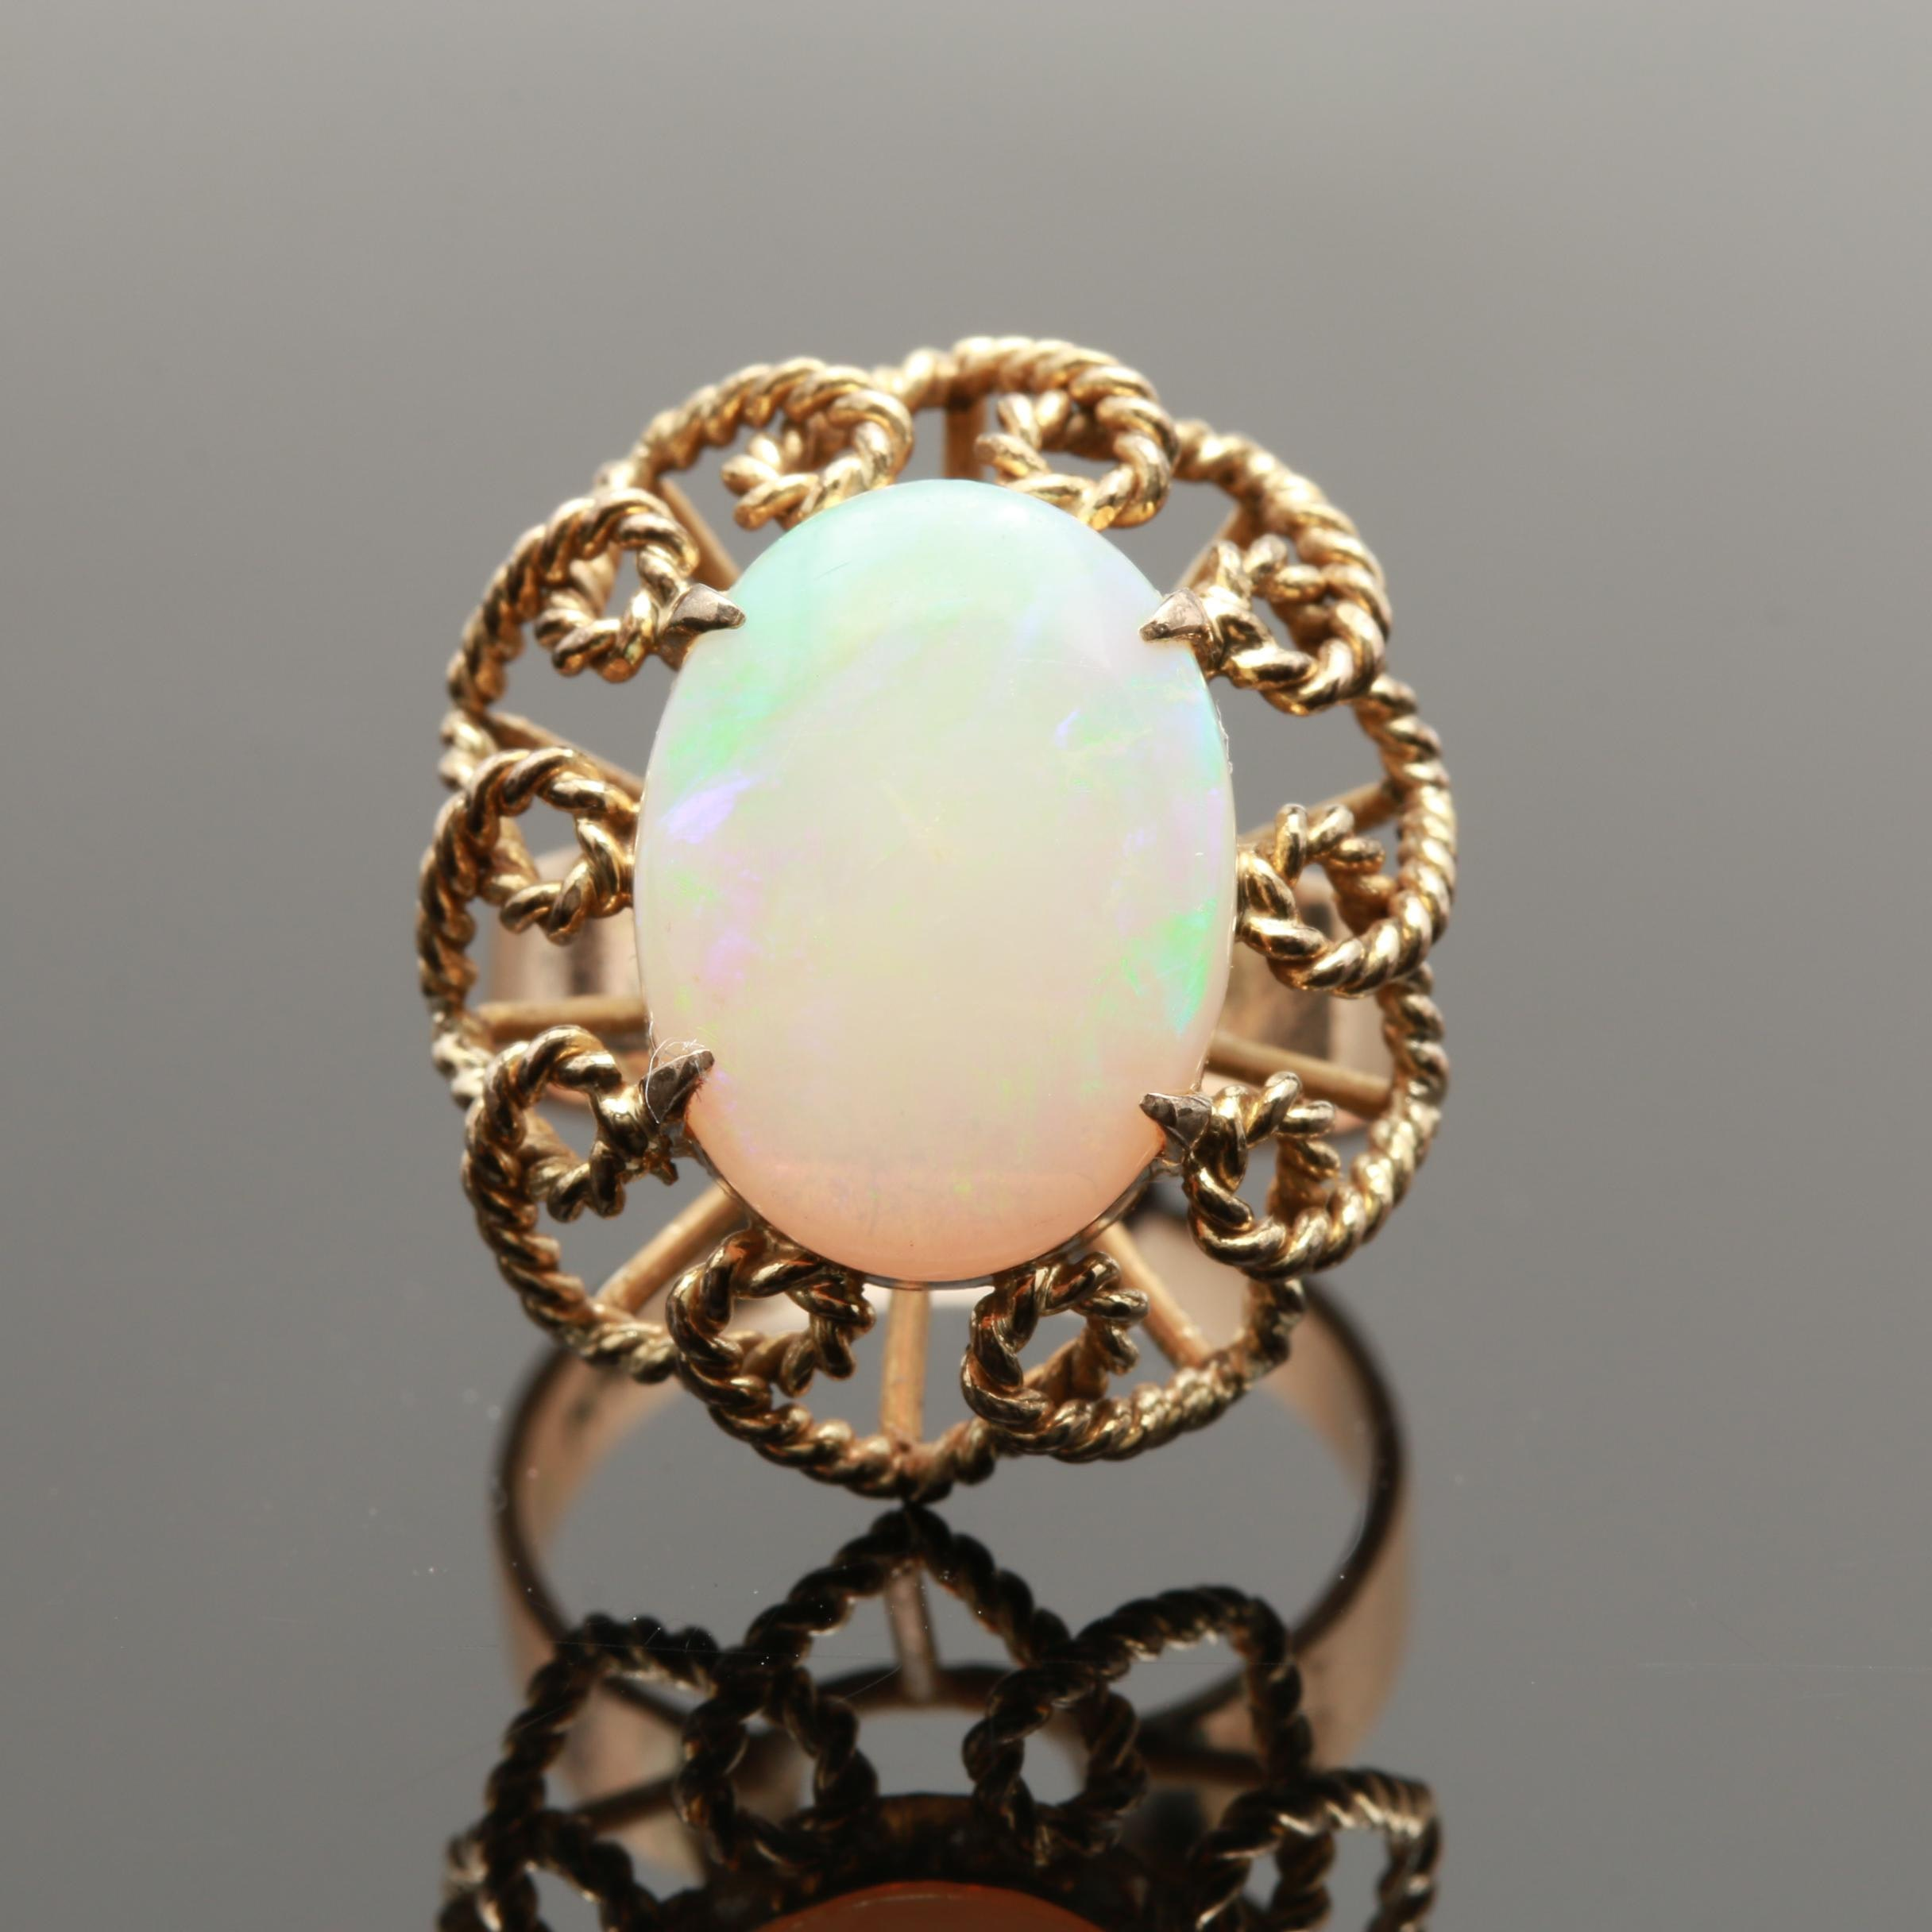 Vintage 14K Yellow Gold Opal Solitaire Floral Motif Ring